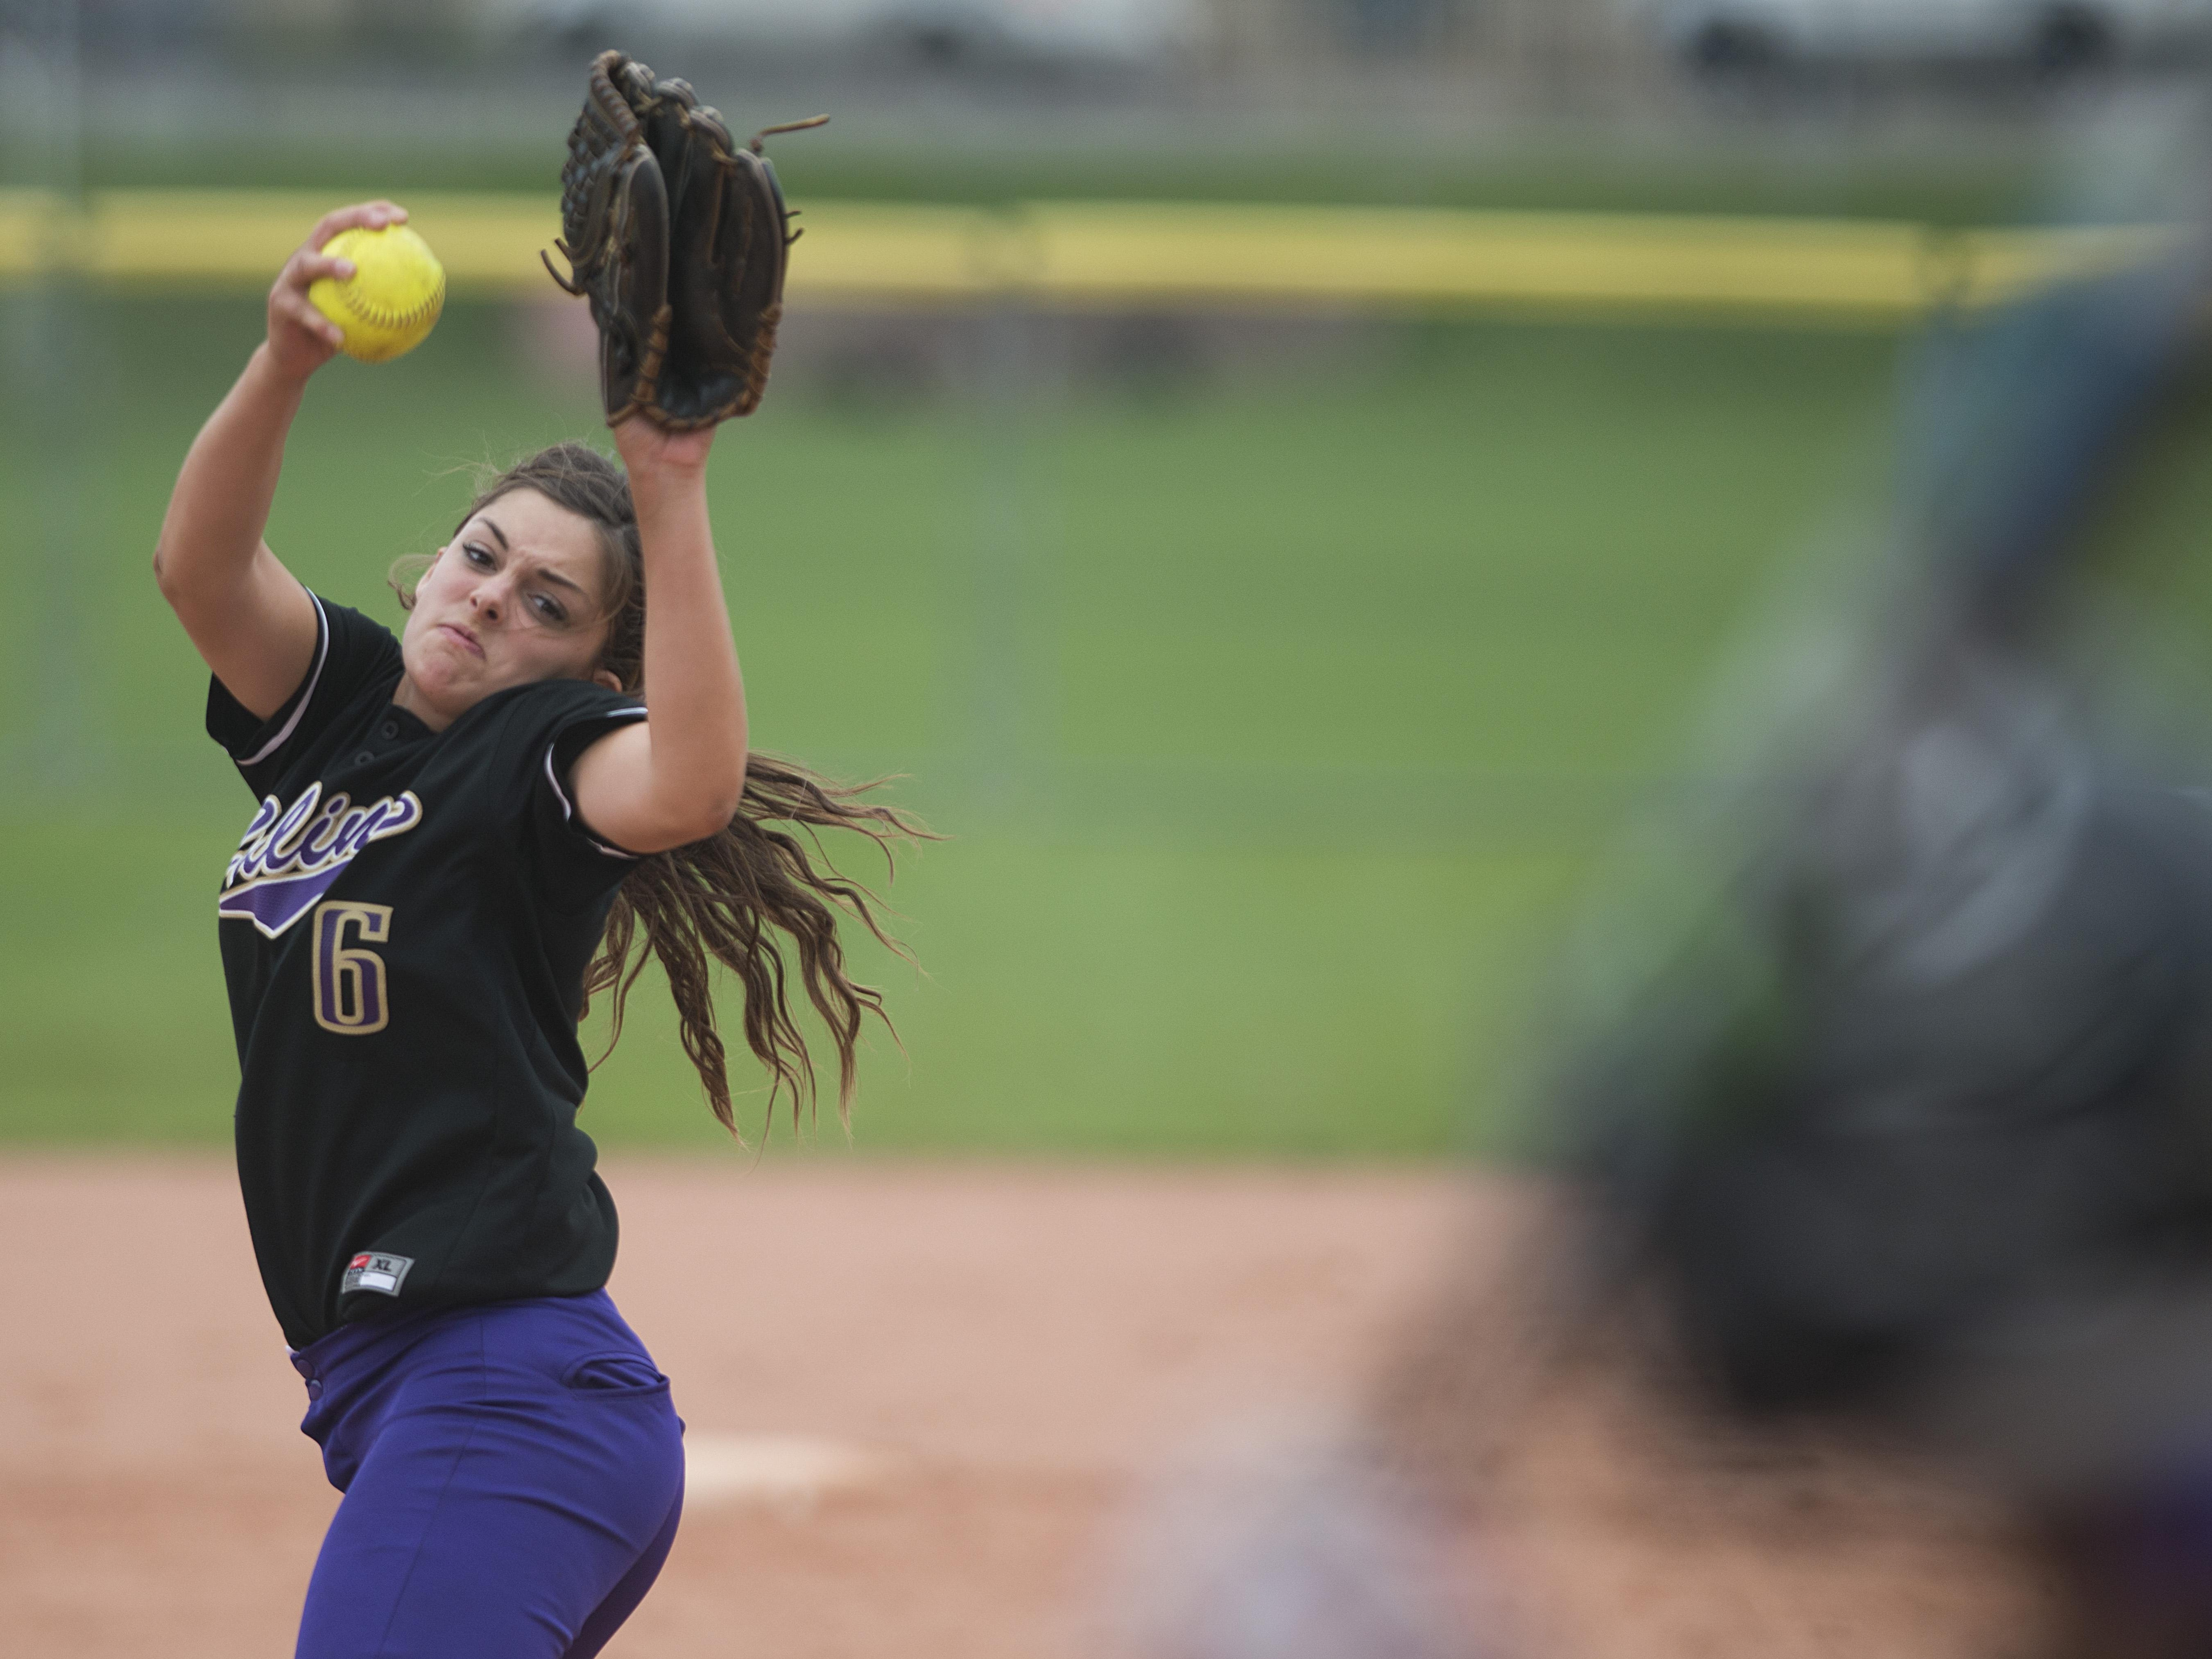 Fort Collins pitcher Ciana Curran in a game earlier this season. Curran is in the top-five among locals in batting average, home runs and strikeouts thrown.